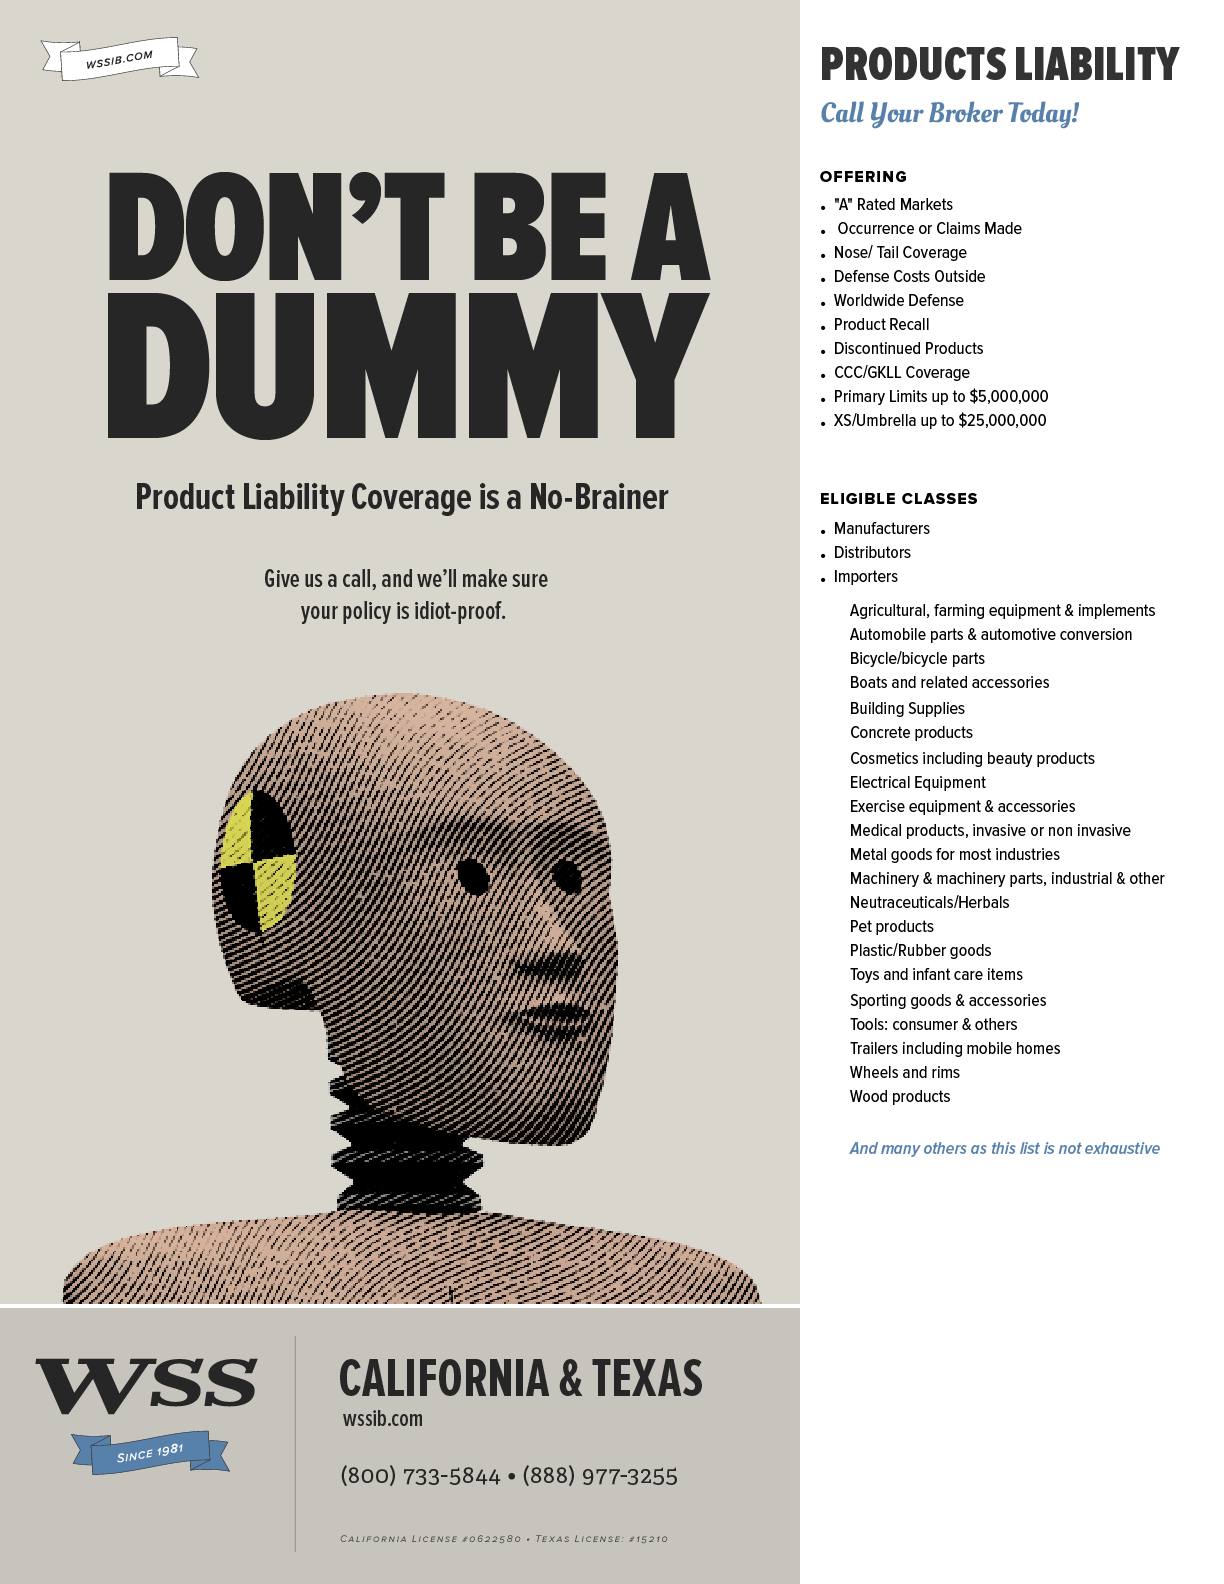 WSS-Flyer-ProductsLiability.png